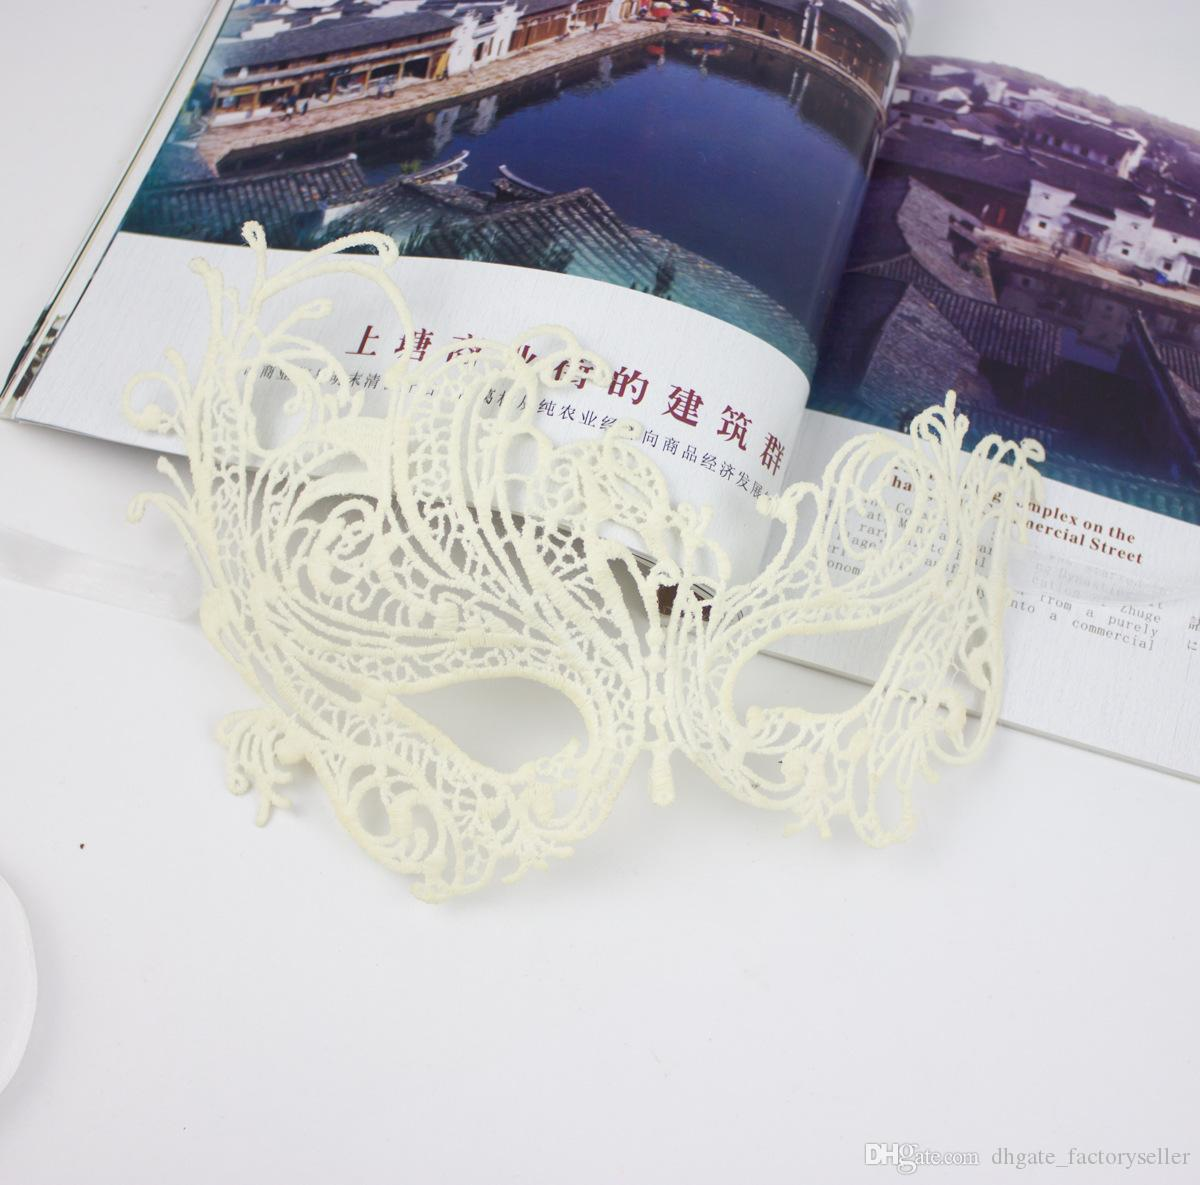 Sexy Mysterious Women's Black Lace Eye Mask For Masquerade Party Prom Ball Halloween Fancy Dress Party